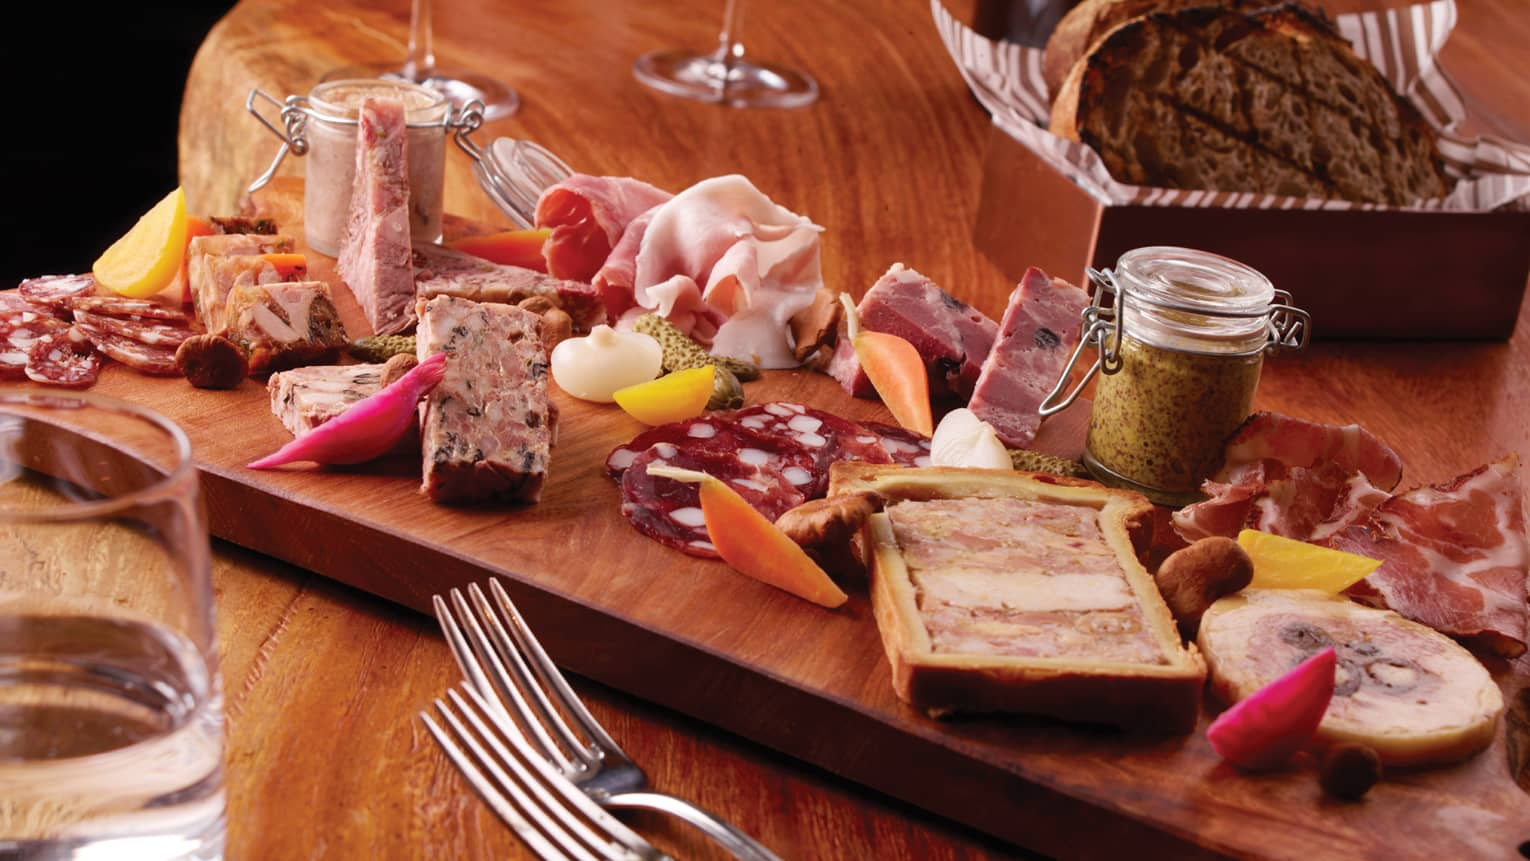 Close-up of charcuterie board with cured meats, pate, mustard